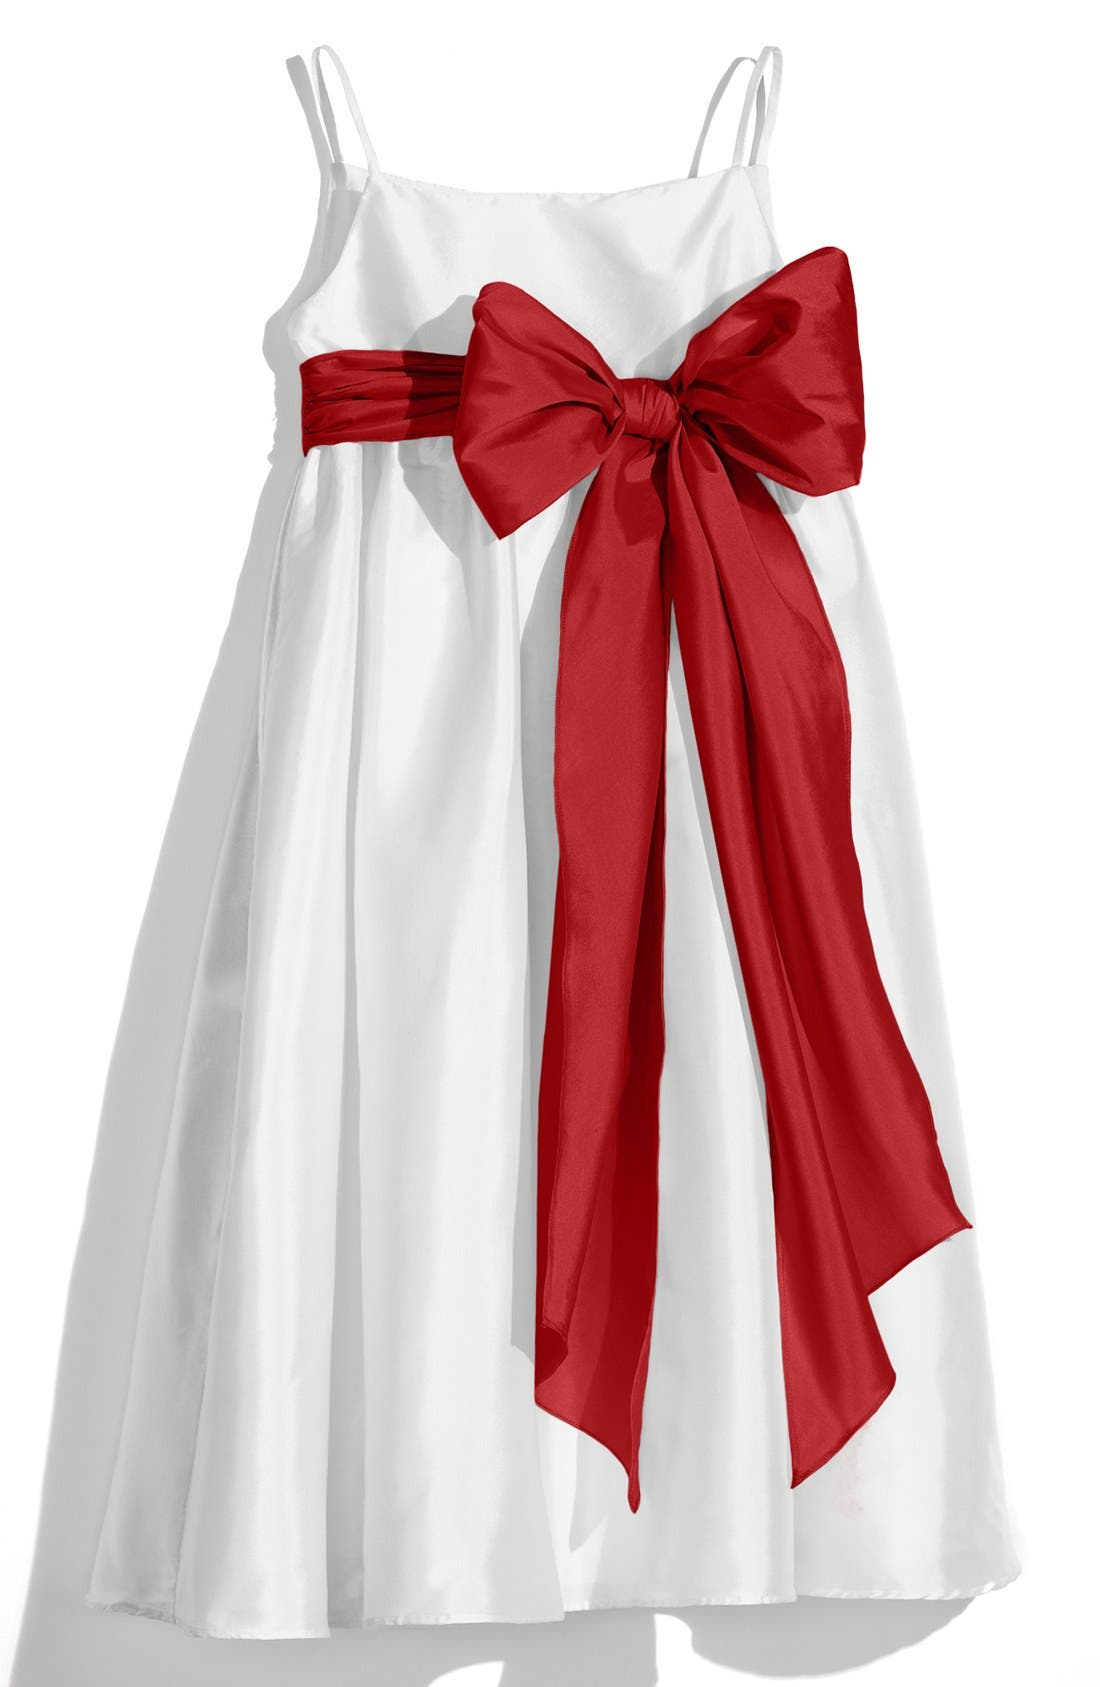 Main Image - Us Angels White Sleeveless Empire Waist Taffeta Dress (Toddler, Little Girls & Big Girls)